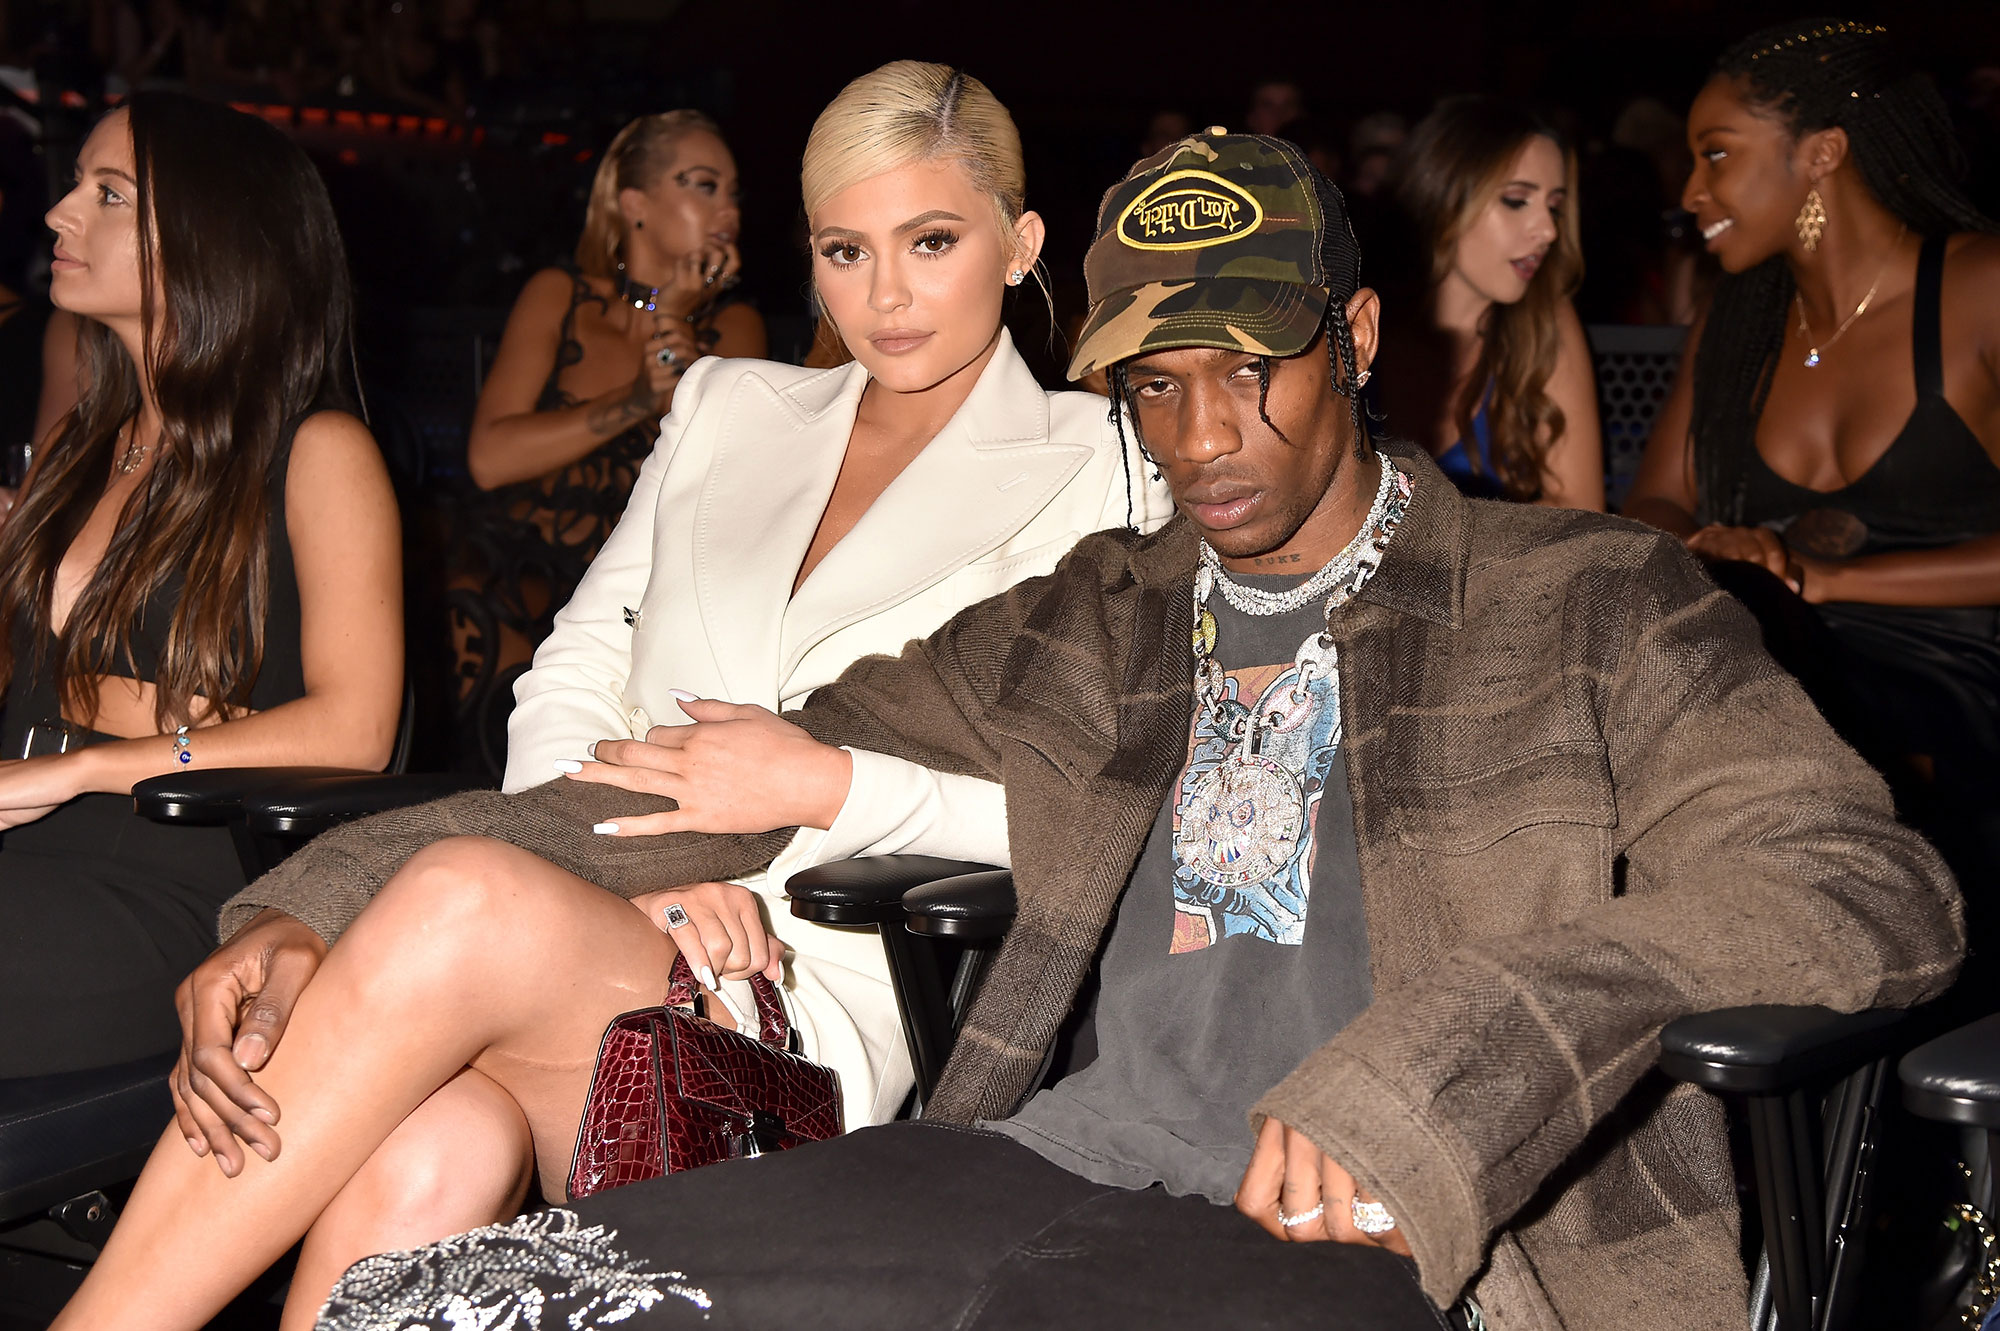 Kylie Jenner and Travis Scott - Kylie Jenner and Travis Scott attend the 2018 MTV Video Music Awards at Radio City Music Hall on August 20, 2018 in New York City.